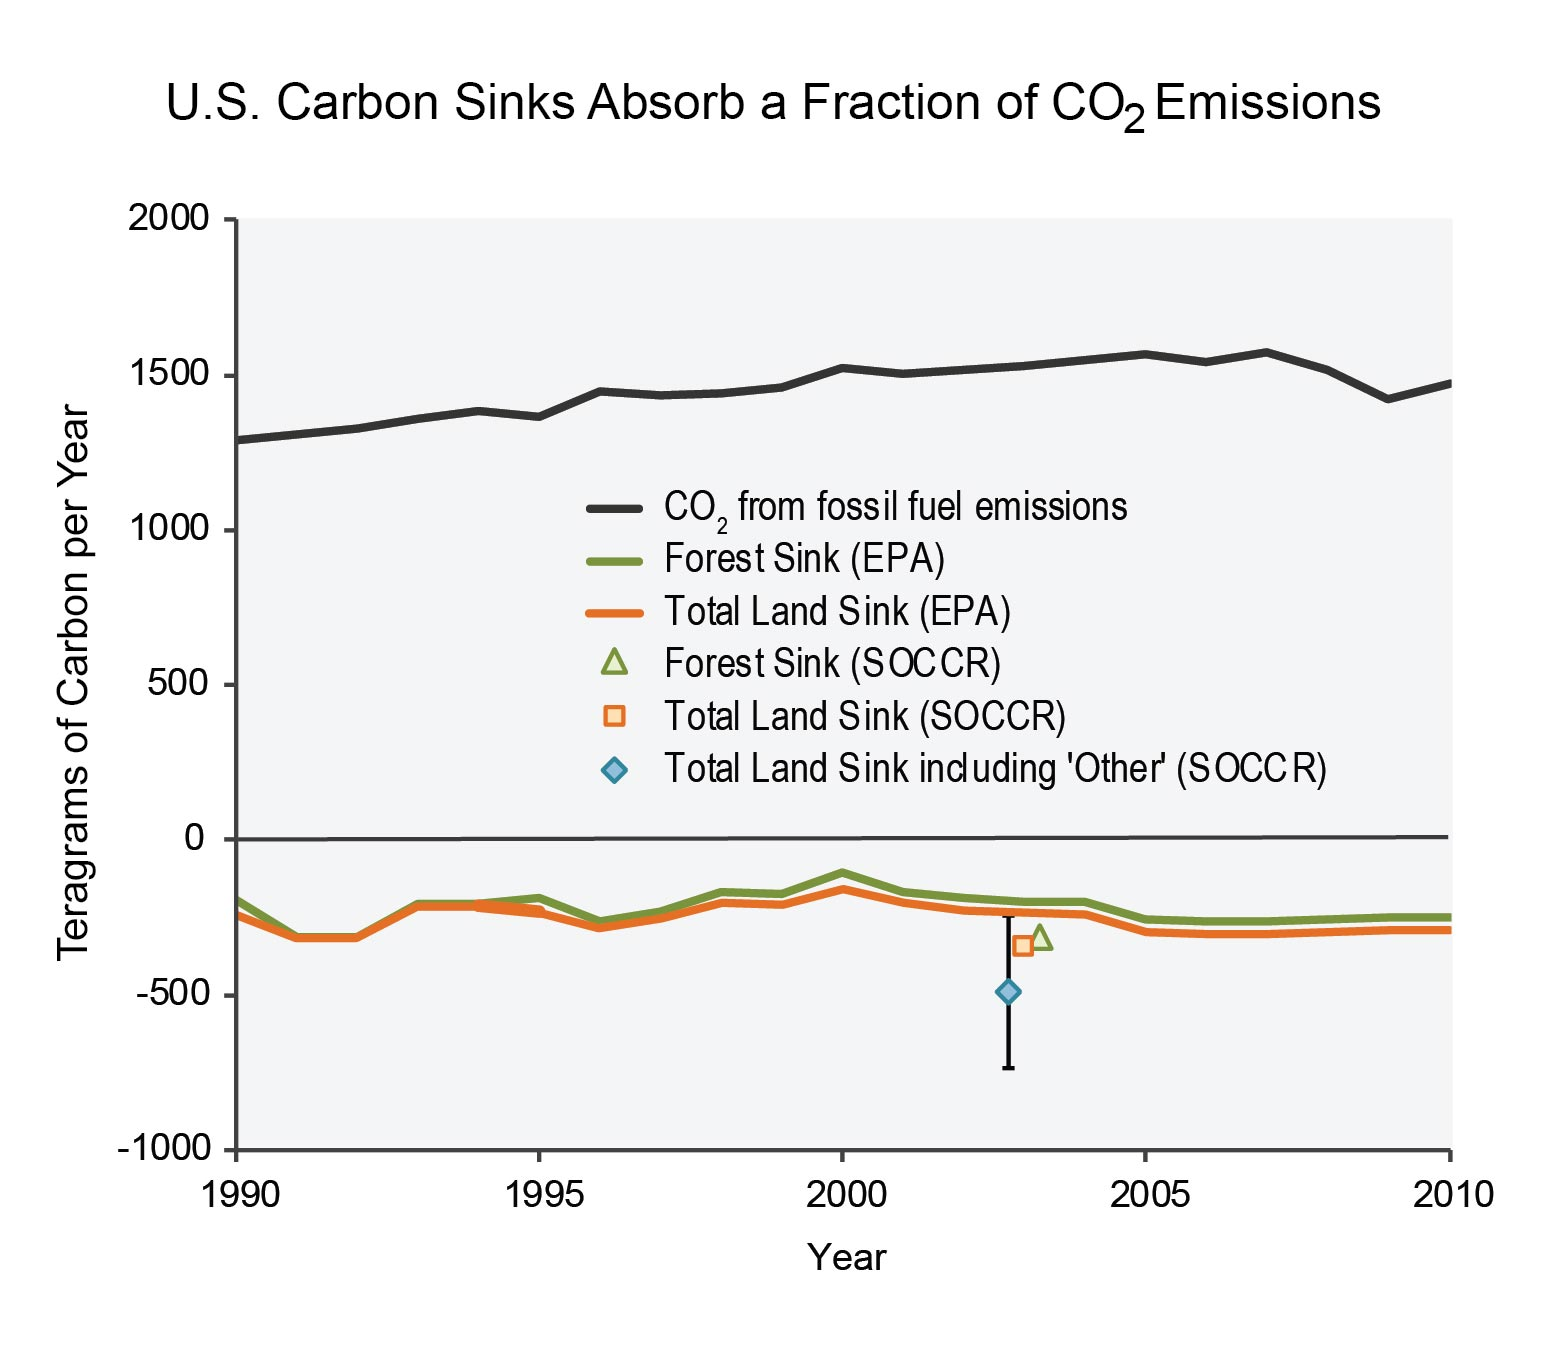 biogeochemical cycles national climate assessment figure 15 5 u s carbon sinks absorb a fraction of co2 emissions